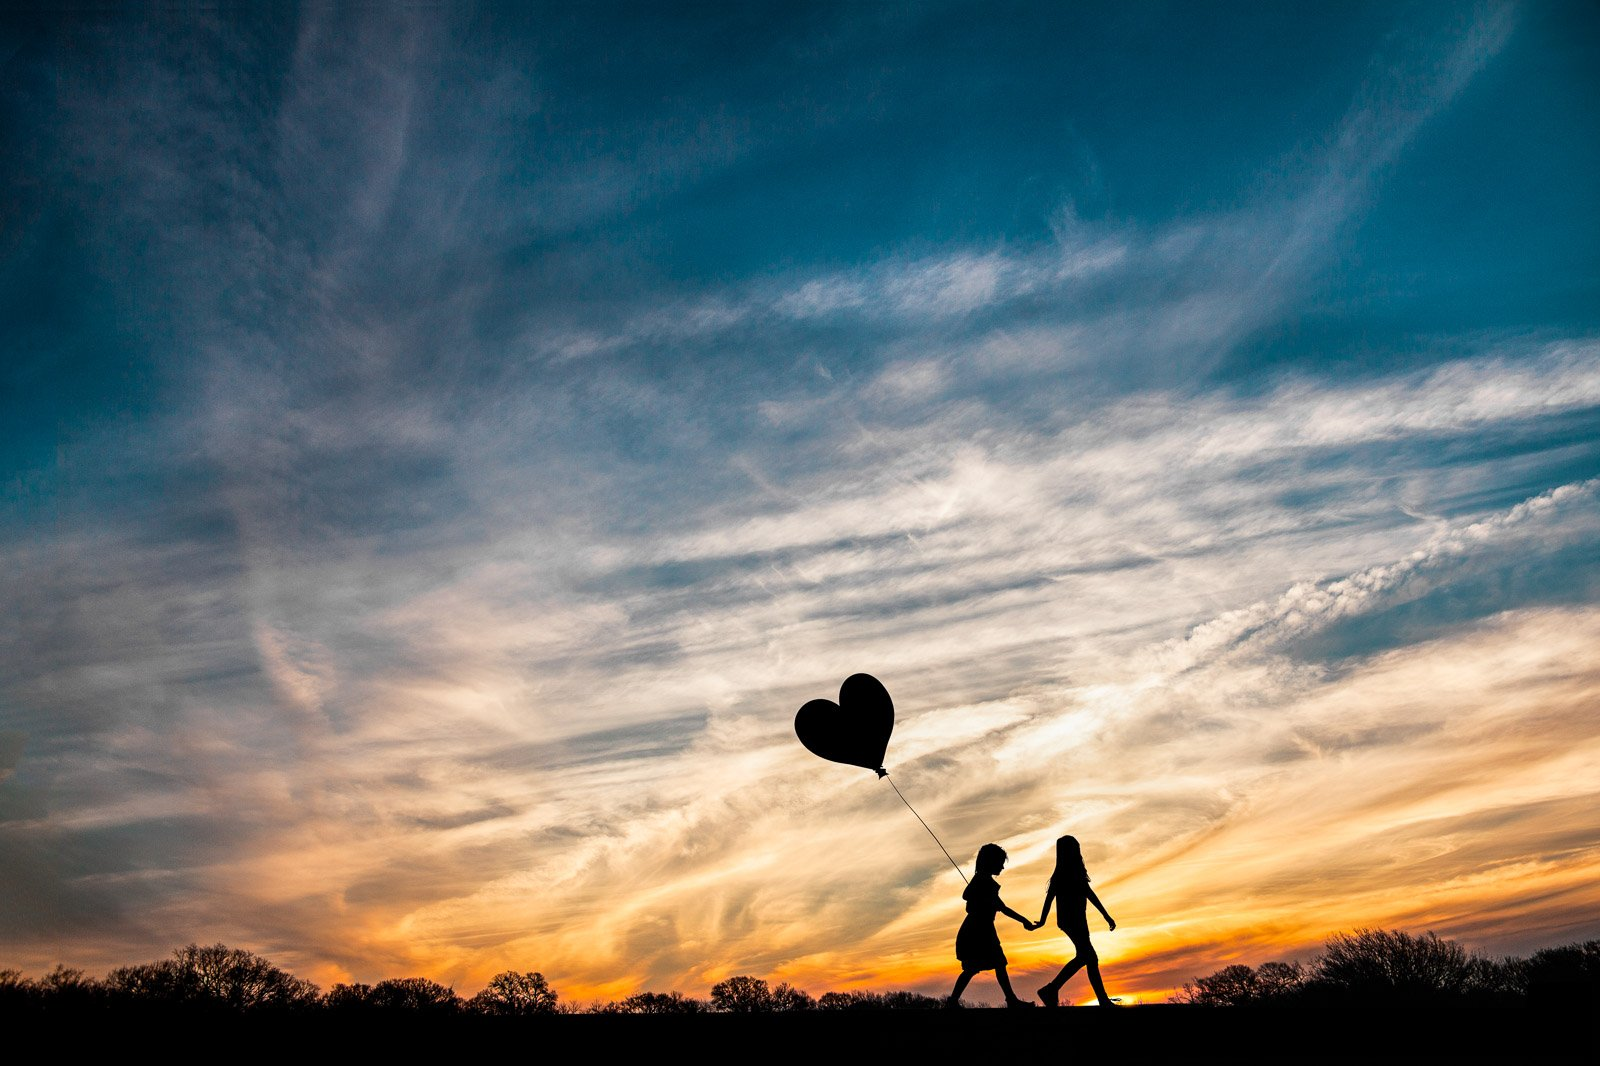 Jen Sebring-silhouette-kids-with-heart-balloon_jensebring